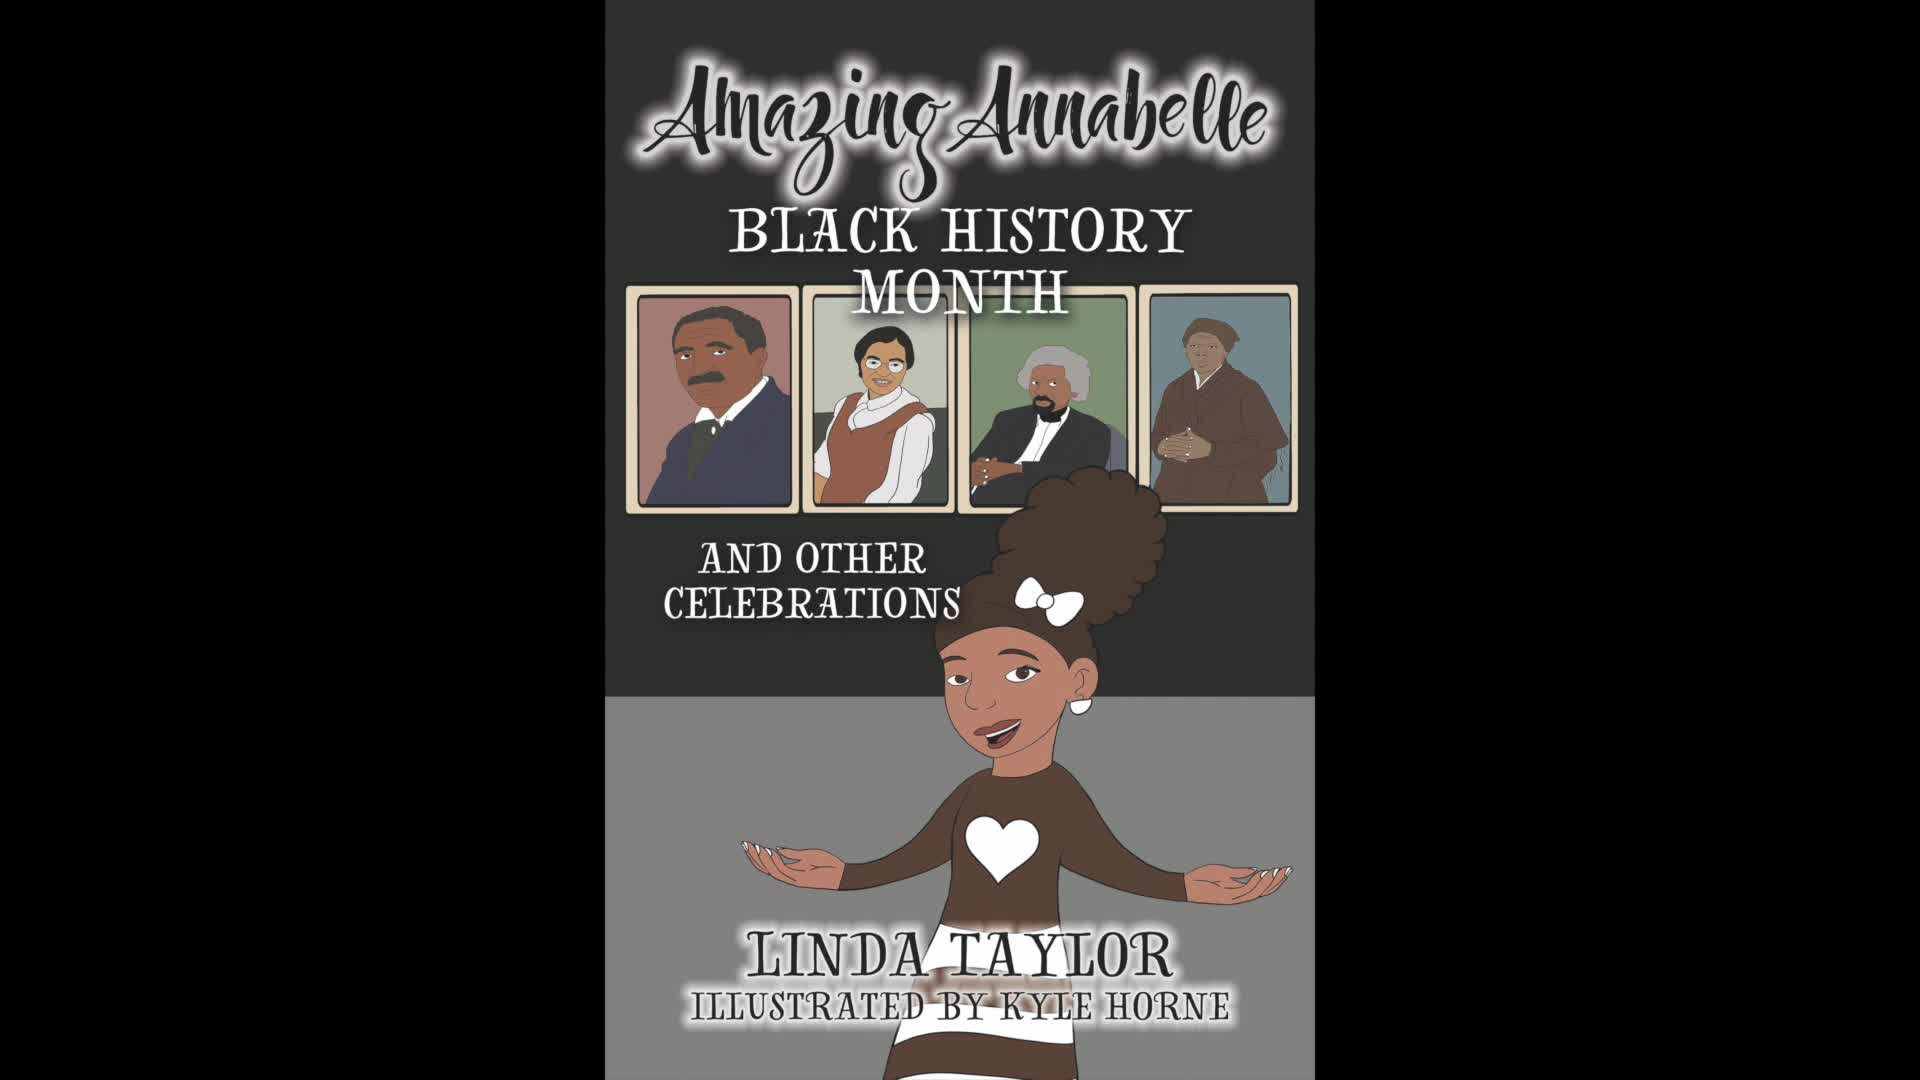 Amazing Annabelle Black History Month Chapter 7